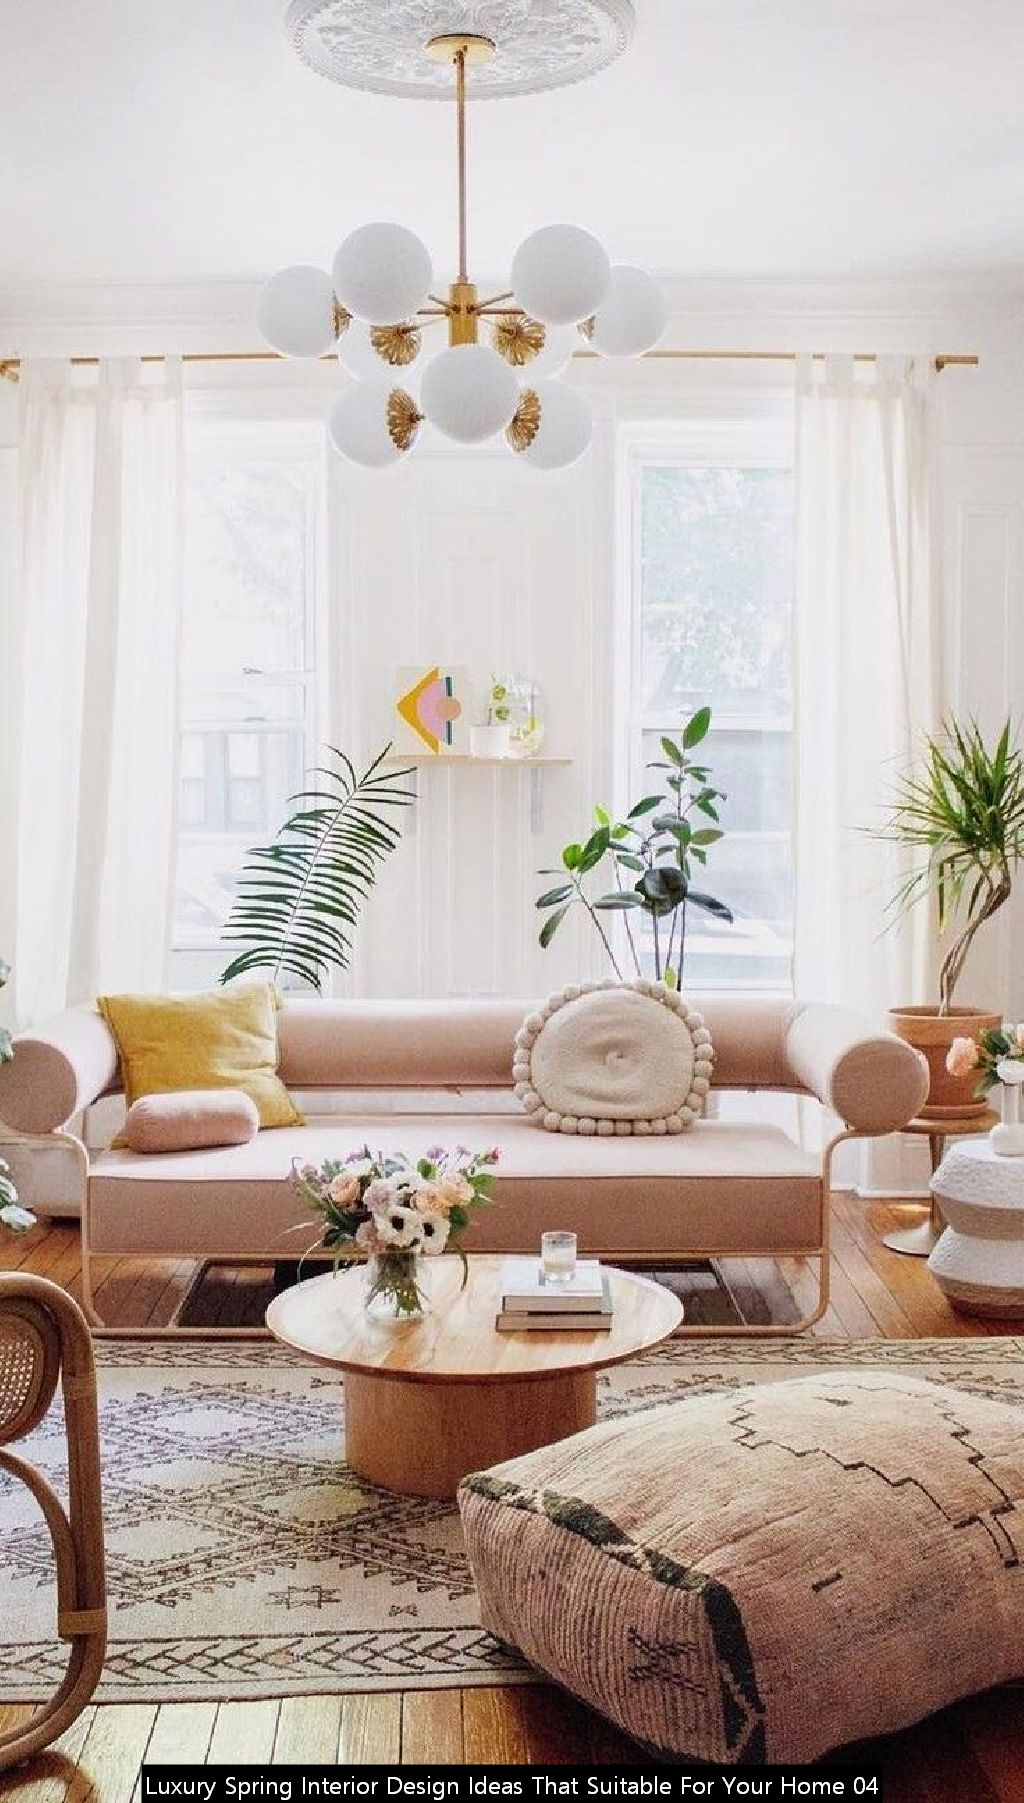 Luxury Spring Interior Design Ideas That Suitable For Your Home 04